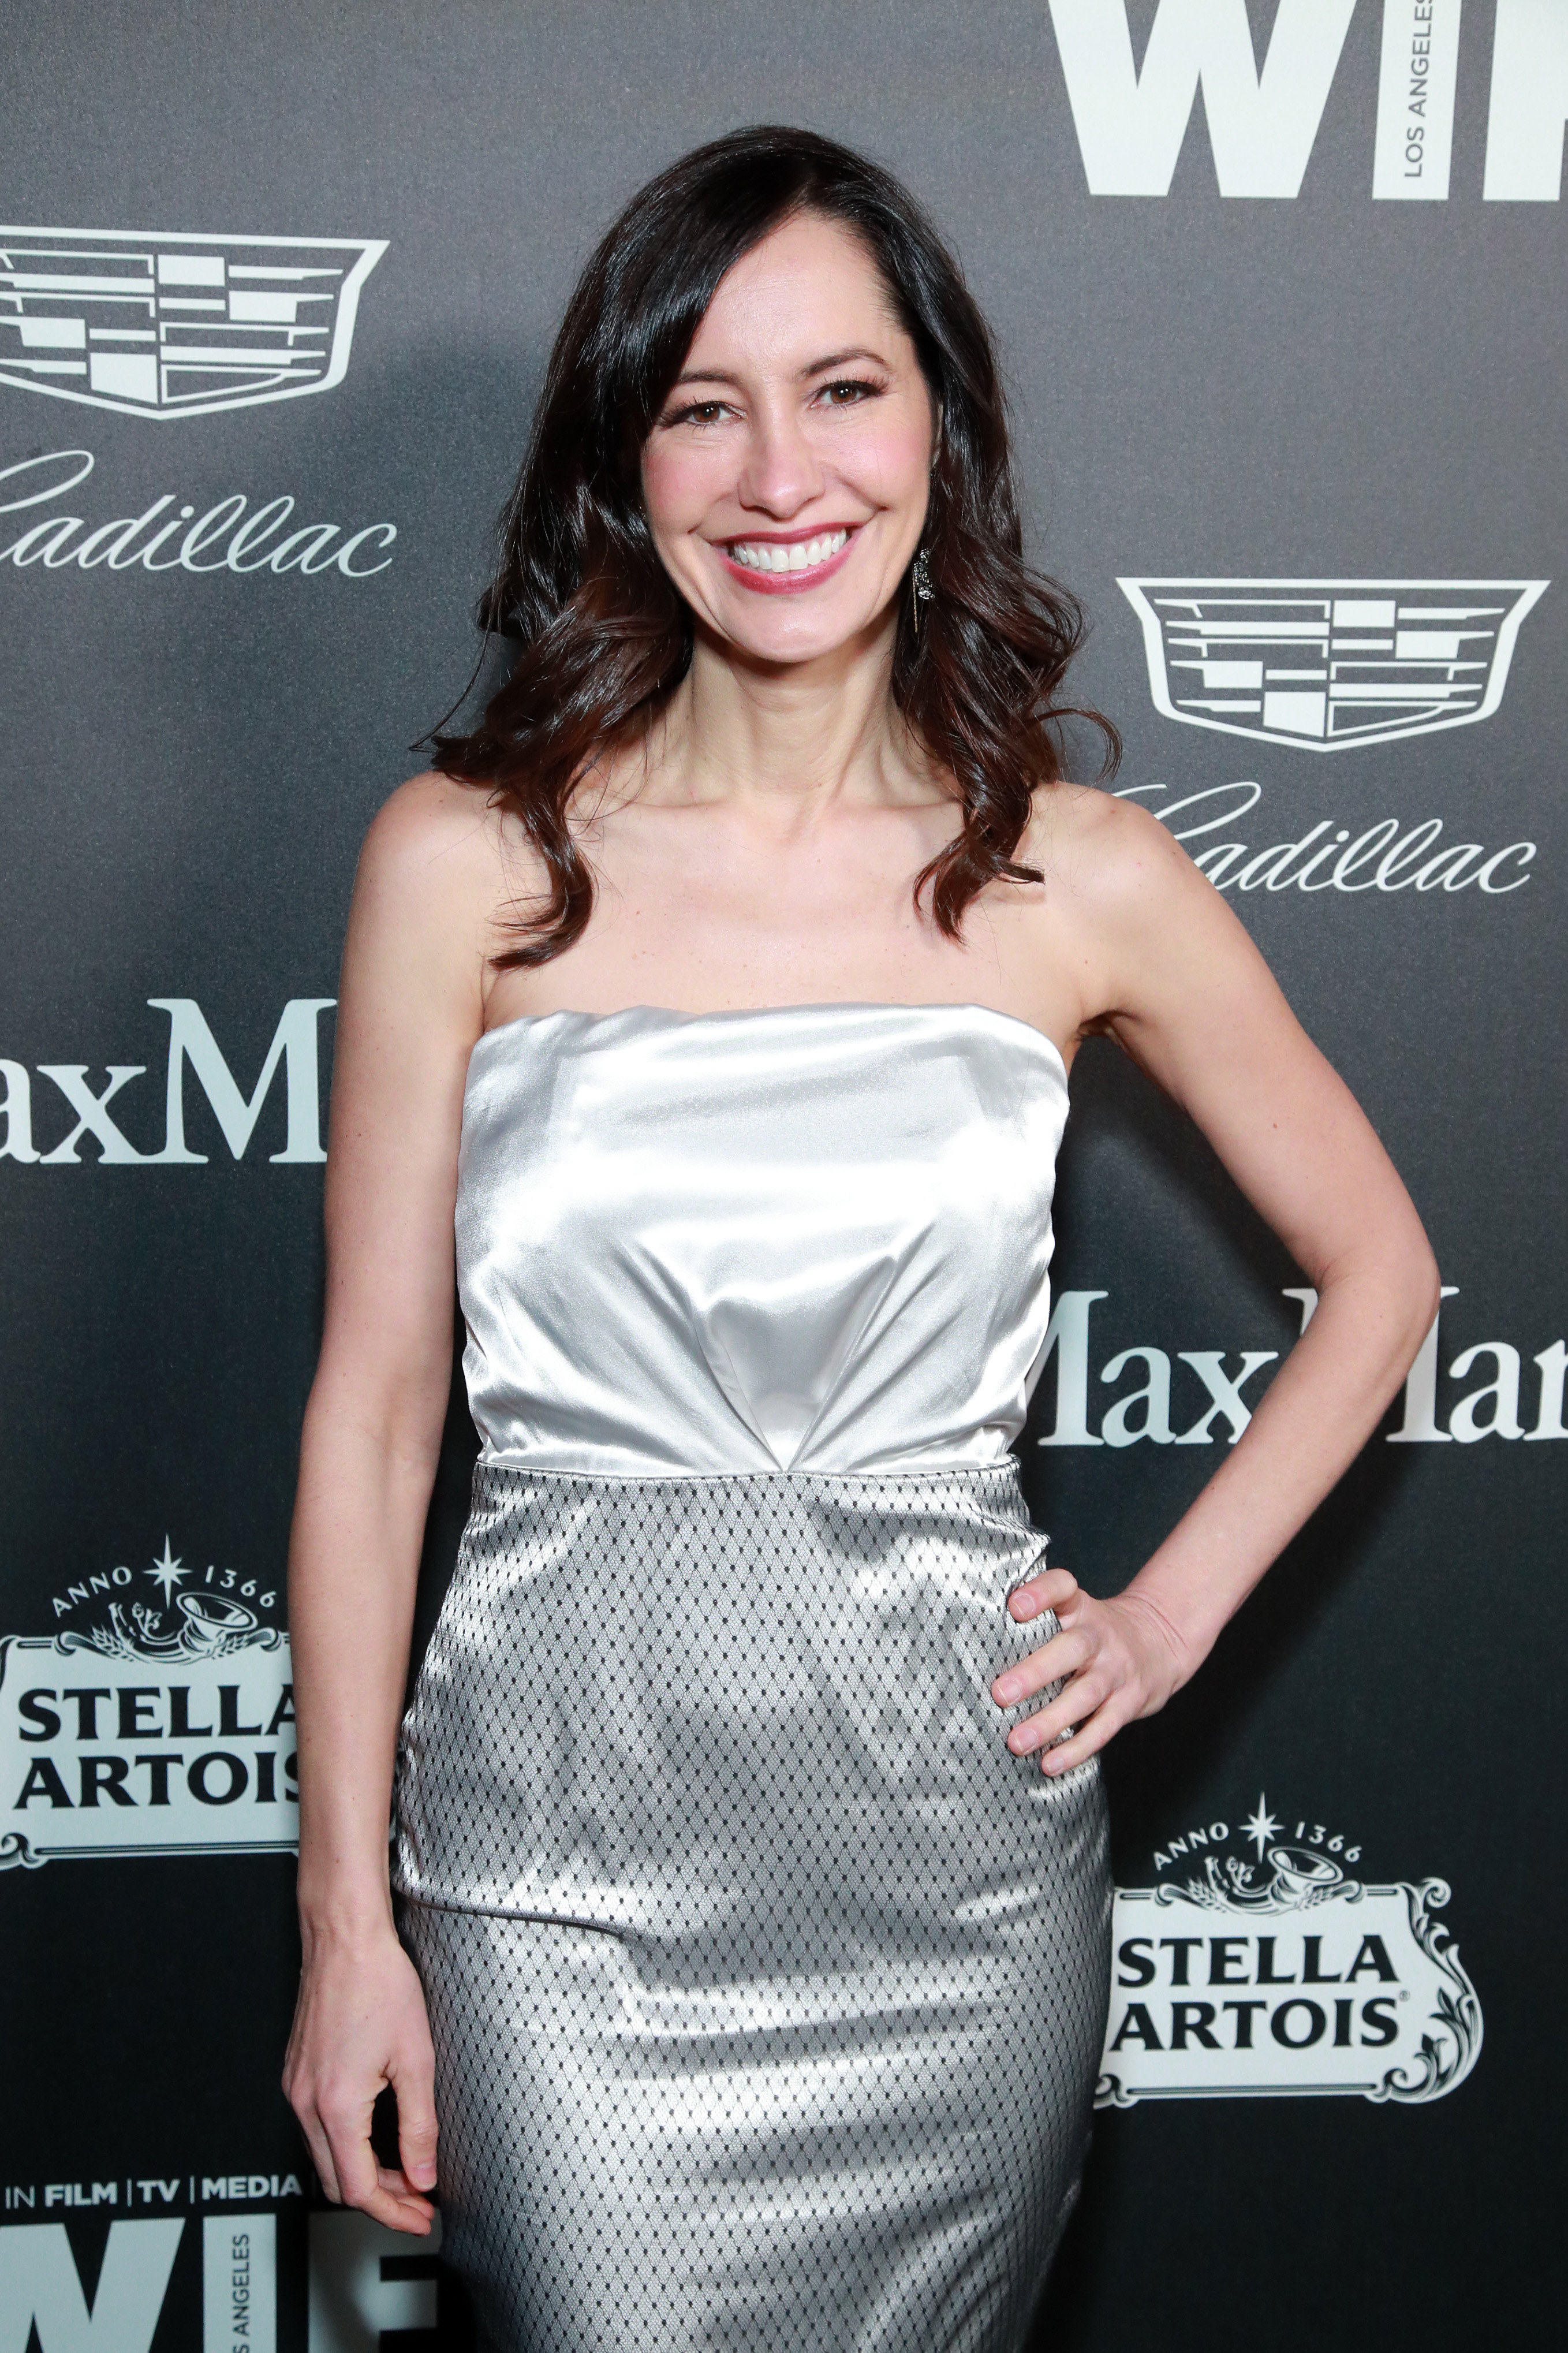 Charlene Amoia on the red carpet